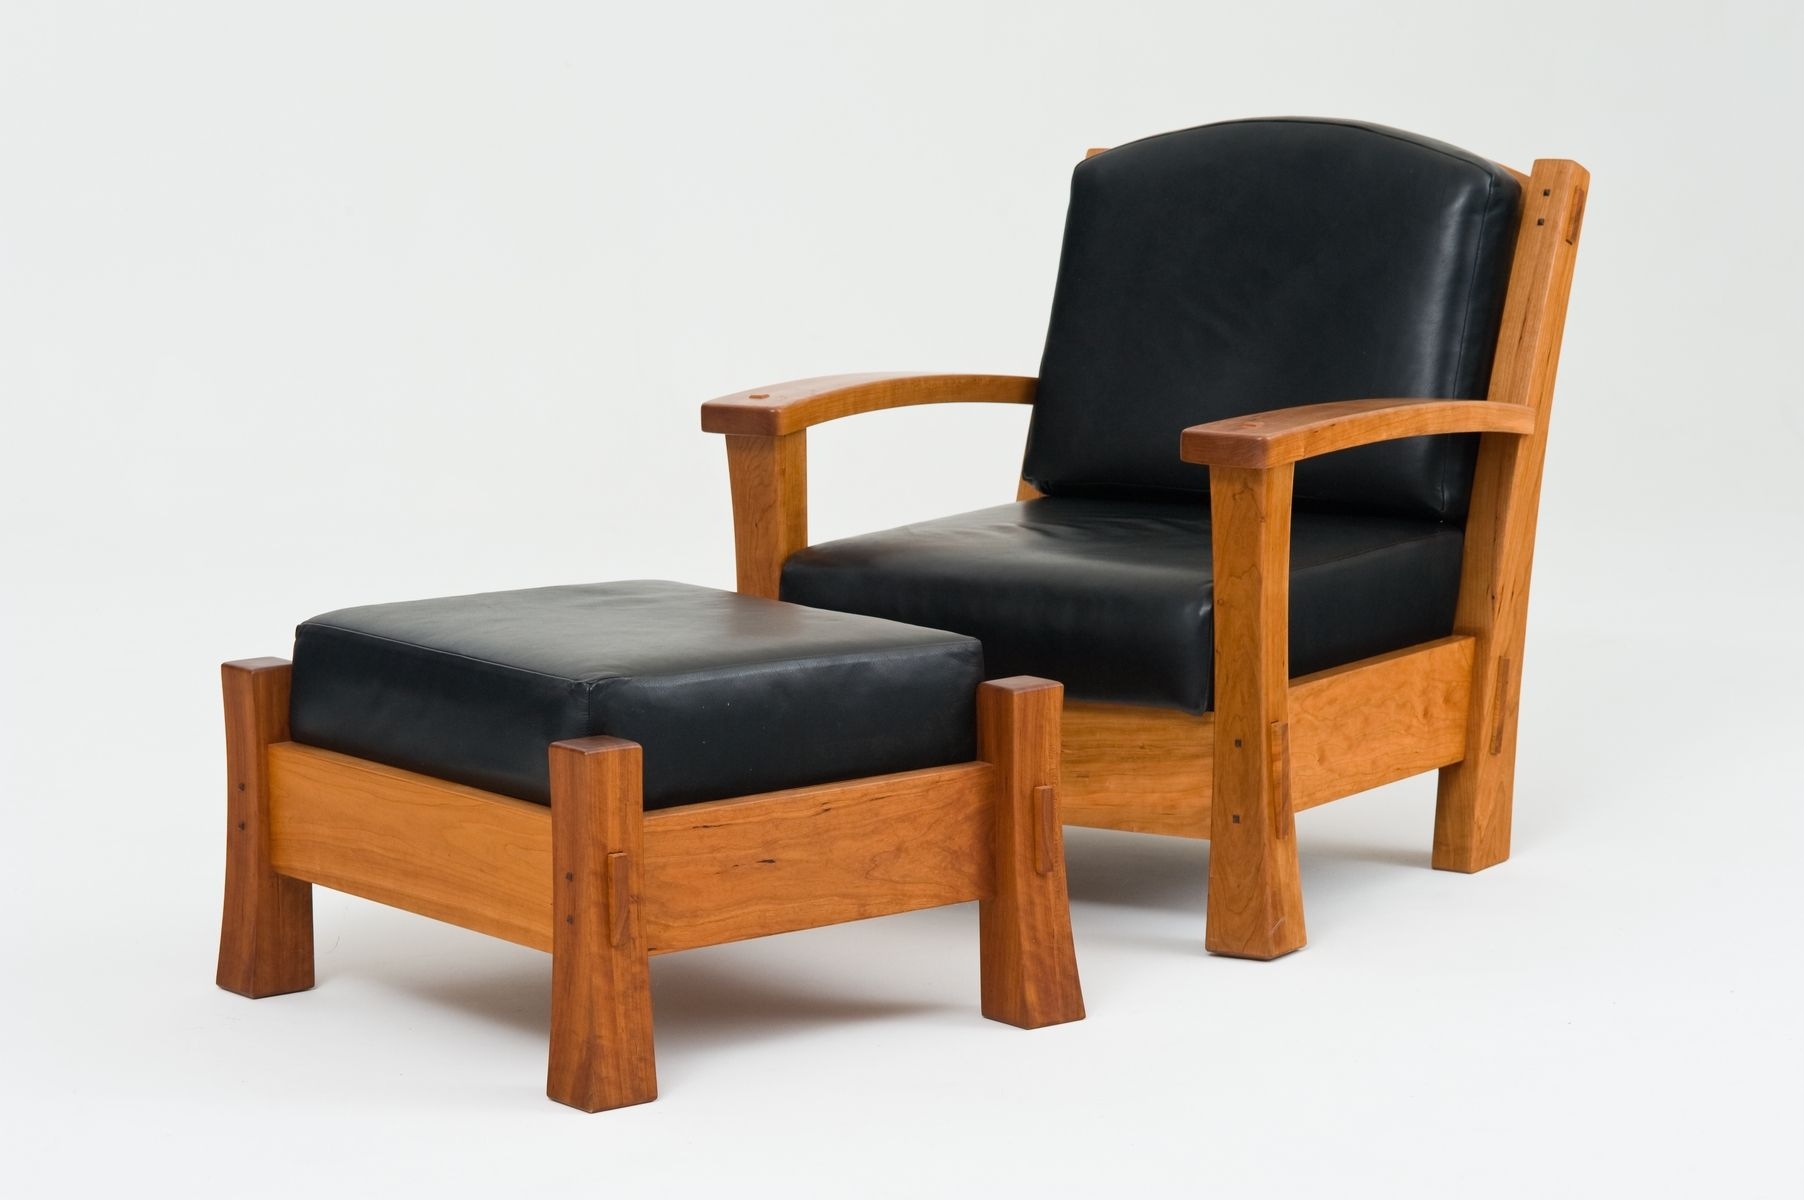 Admirable Hand Crafted Arm Chair And Ottoman By Underbark Furniture Andrewgaddart Wooden Chair Designs For Living Room Andrewgaddartcom